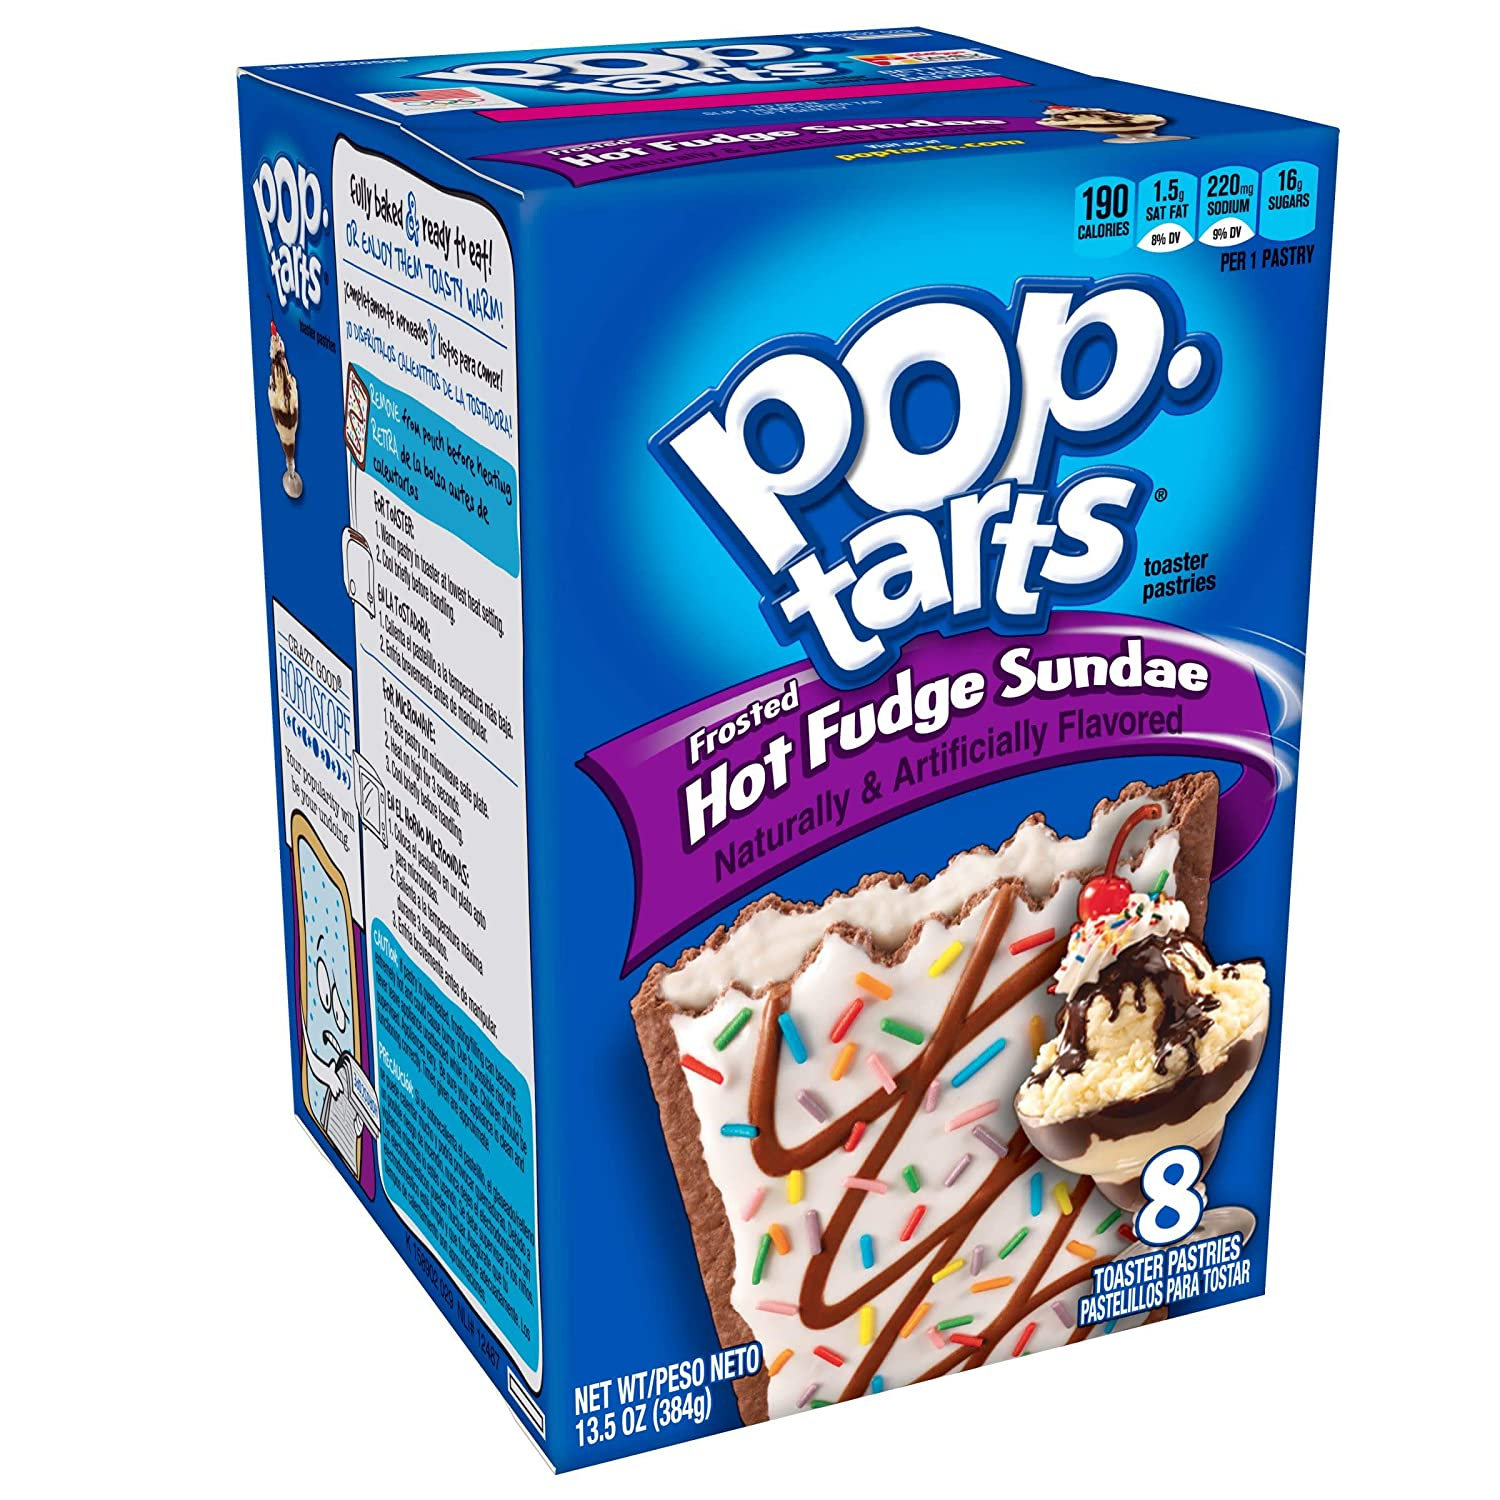 Pop-Tarts Breakfast Toaster Pastries, Frosted Hot Fudge Sundae Flavored, 13.5 oz, 8 Count(Pack of 8)